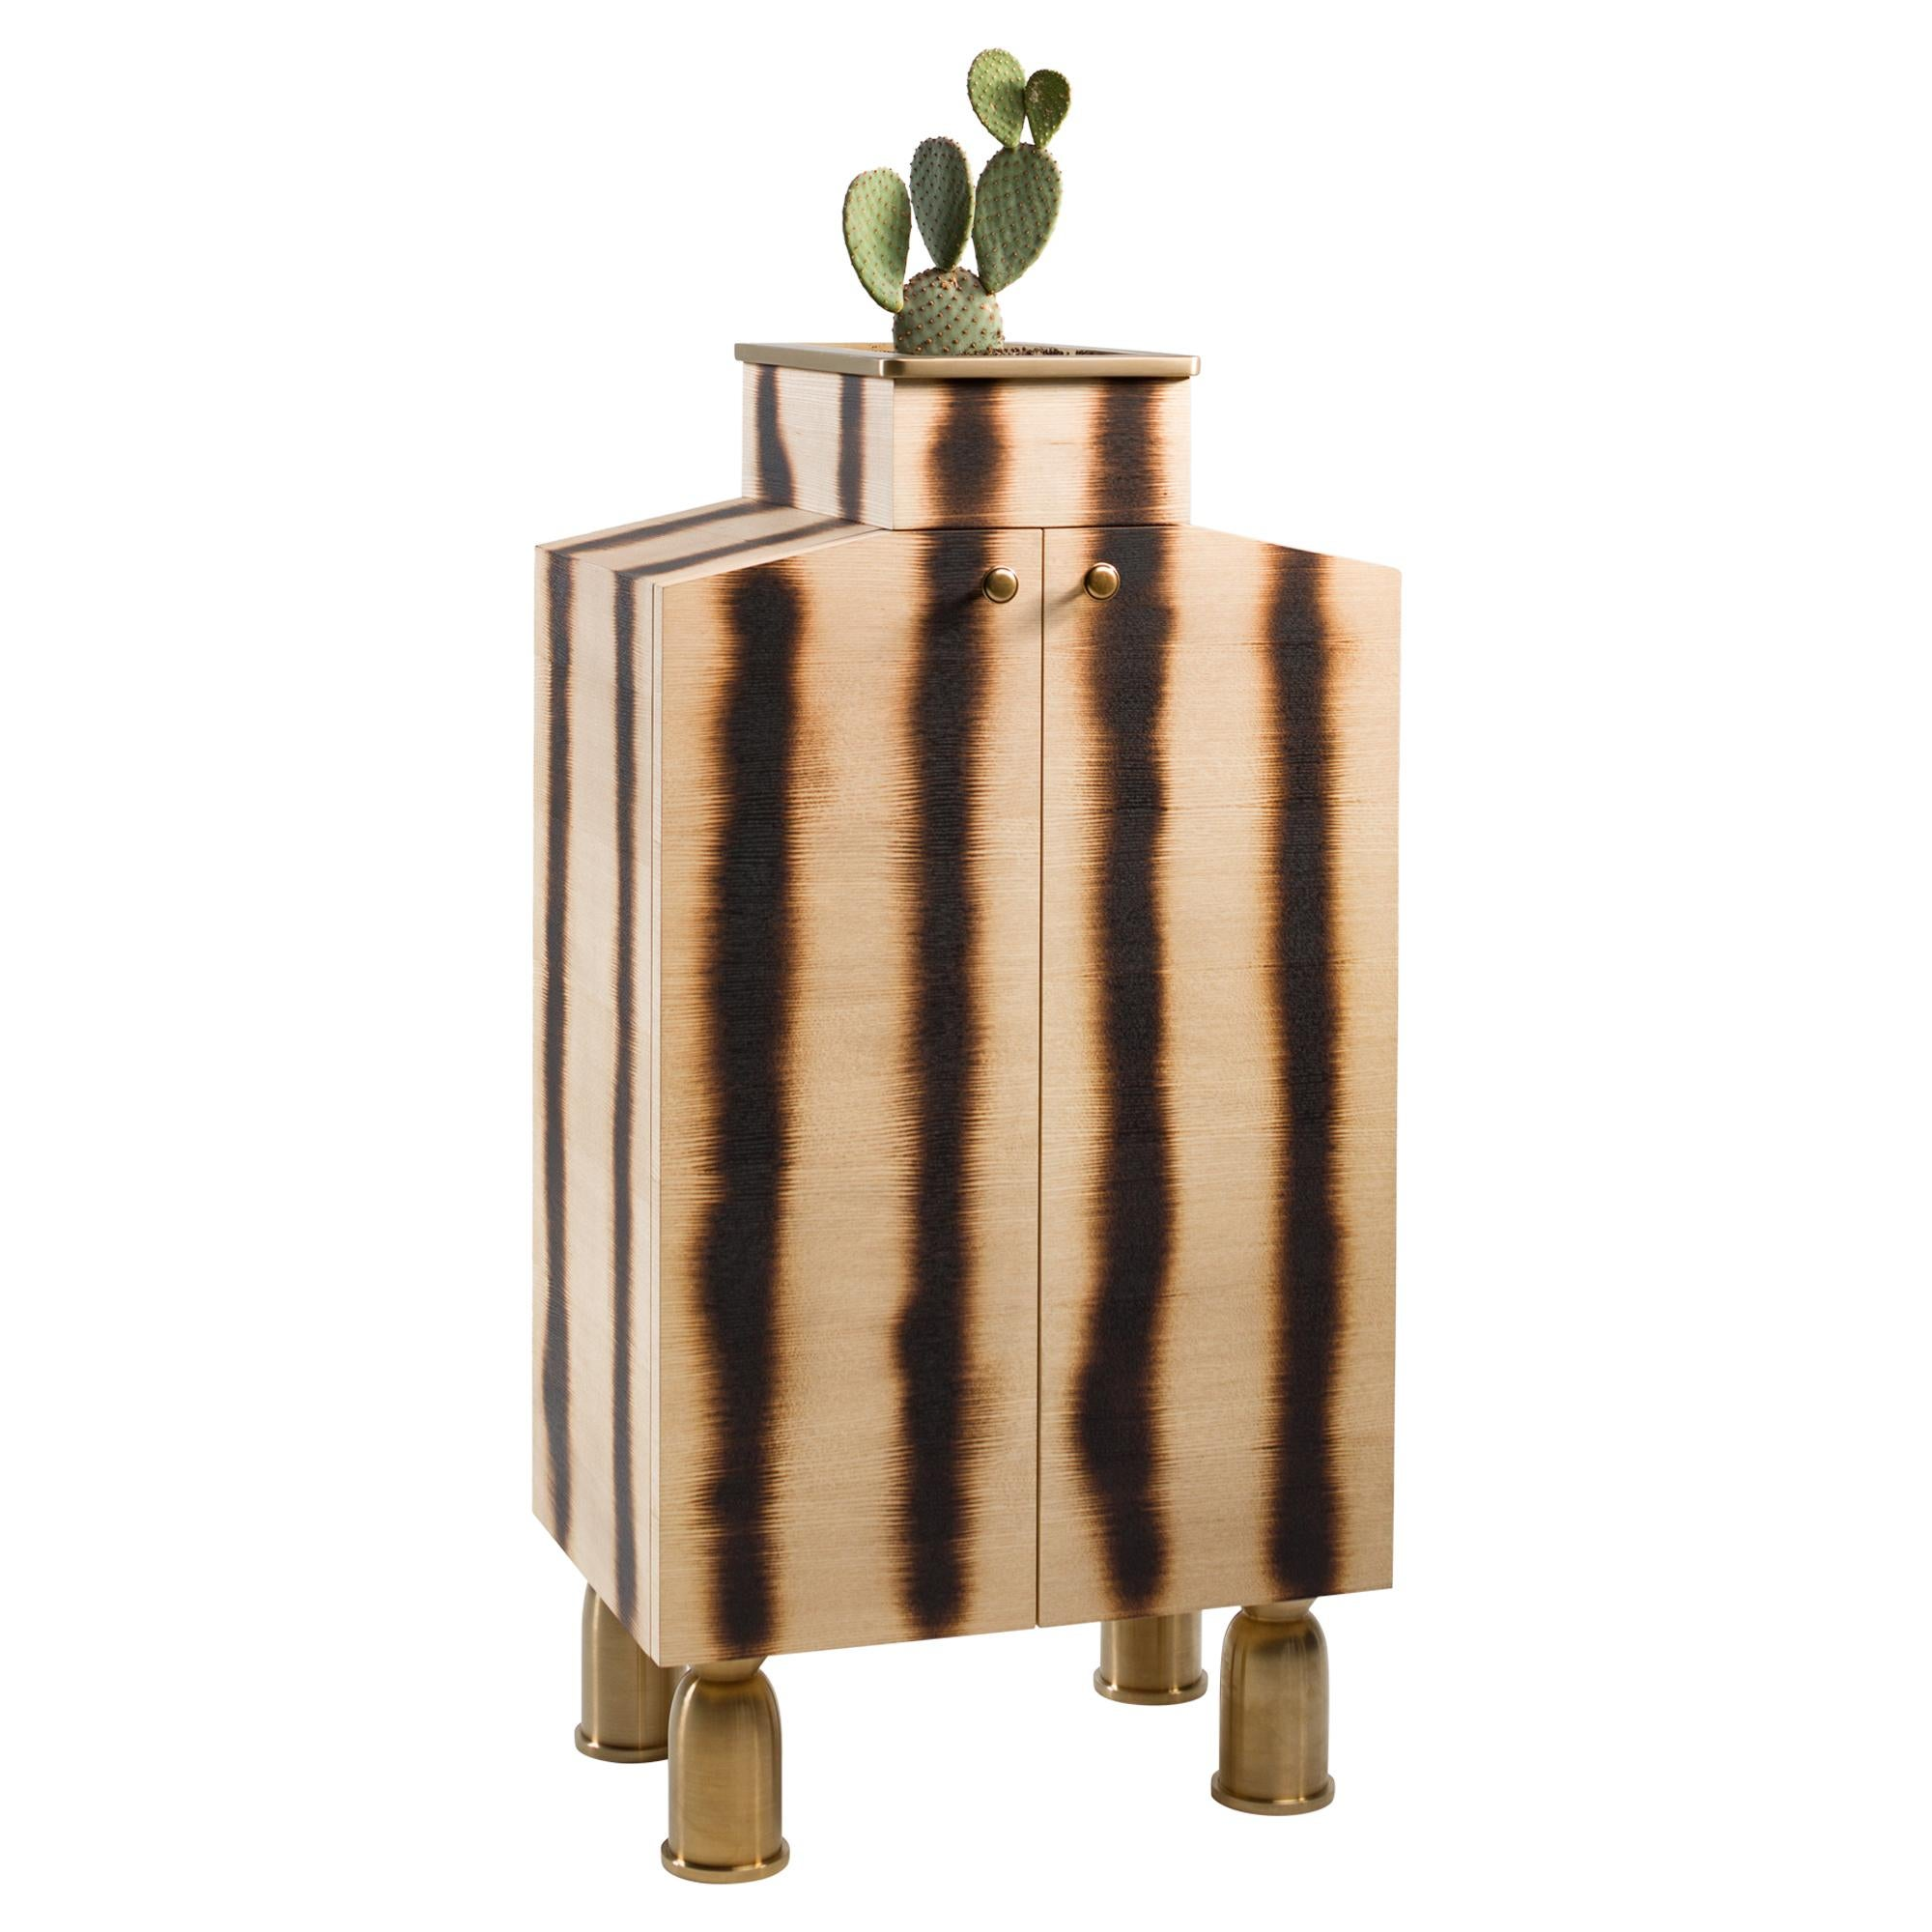 Bright Plywood Cabinet with Brass Legs, Bugs Collection